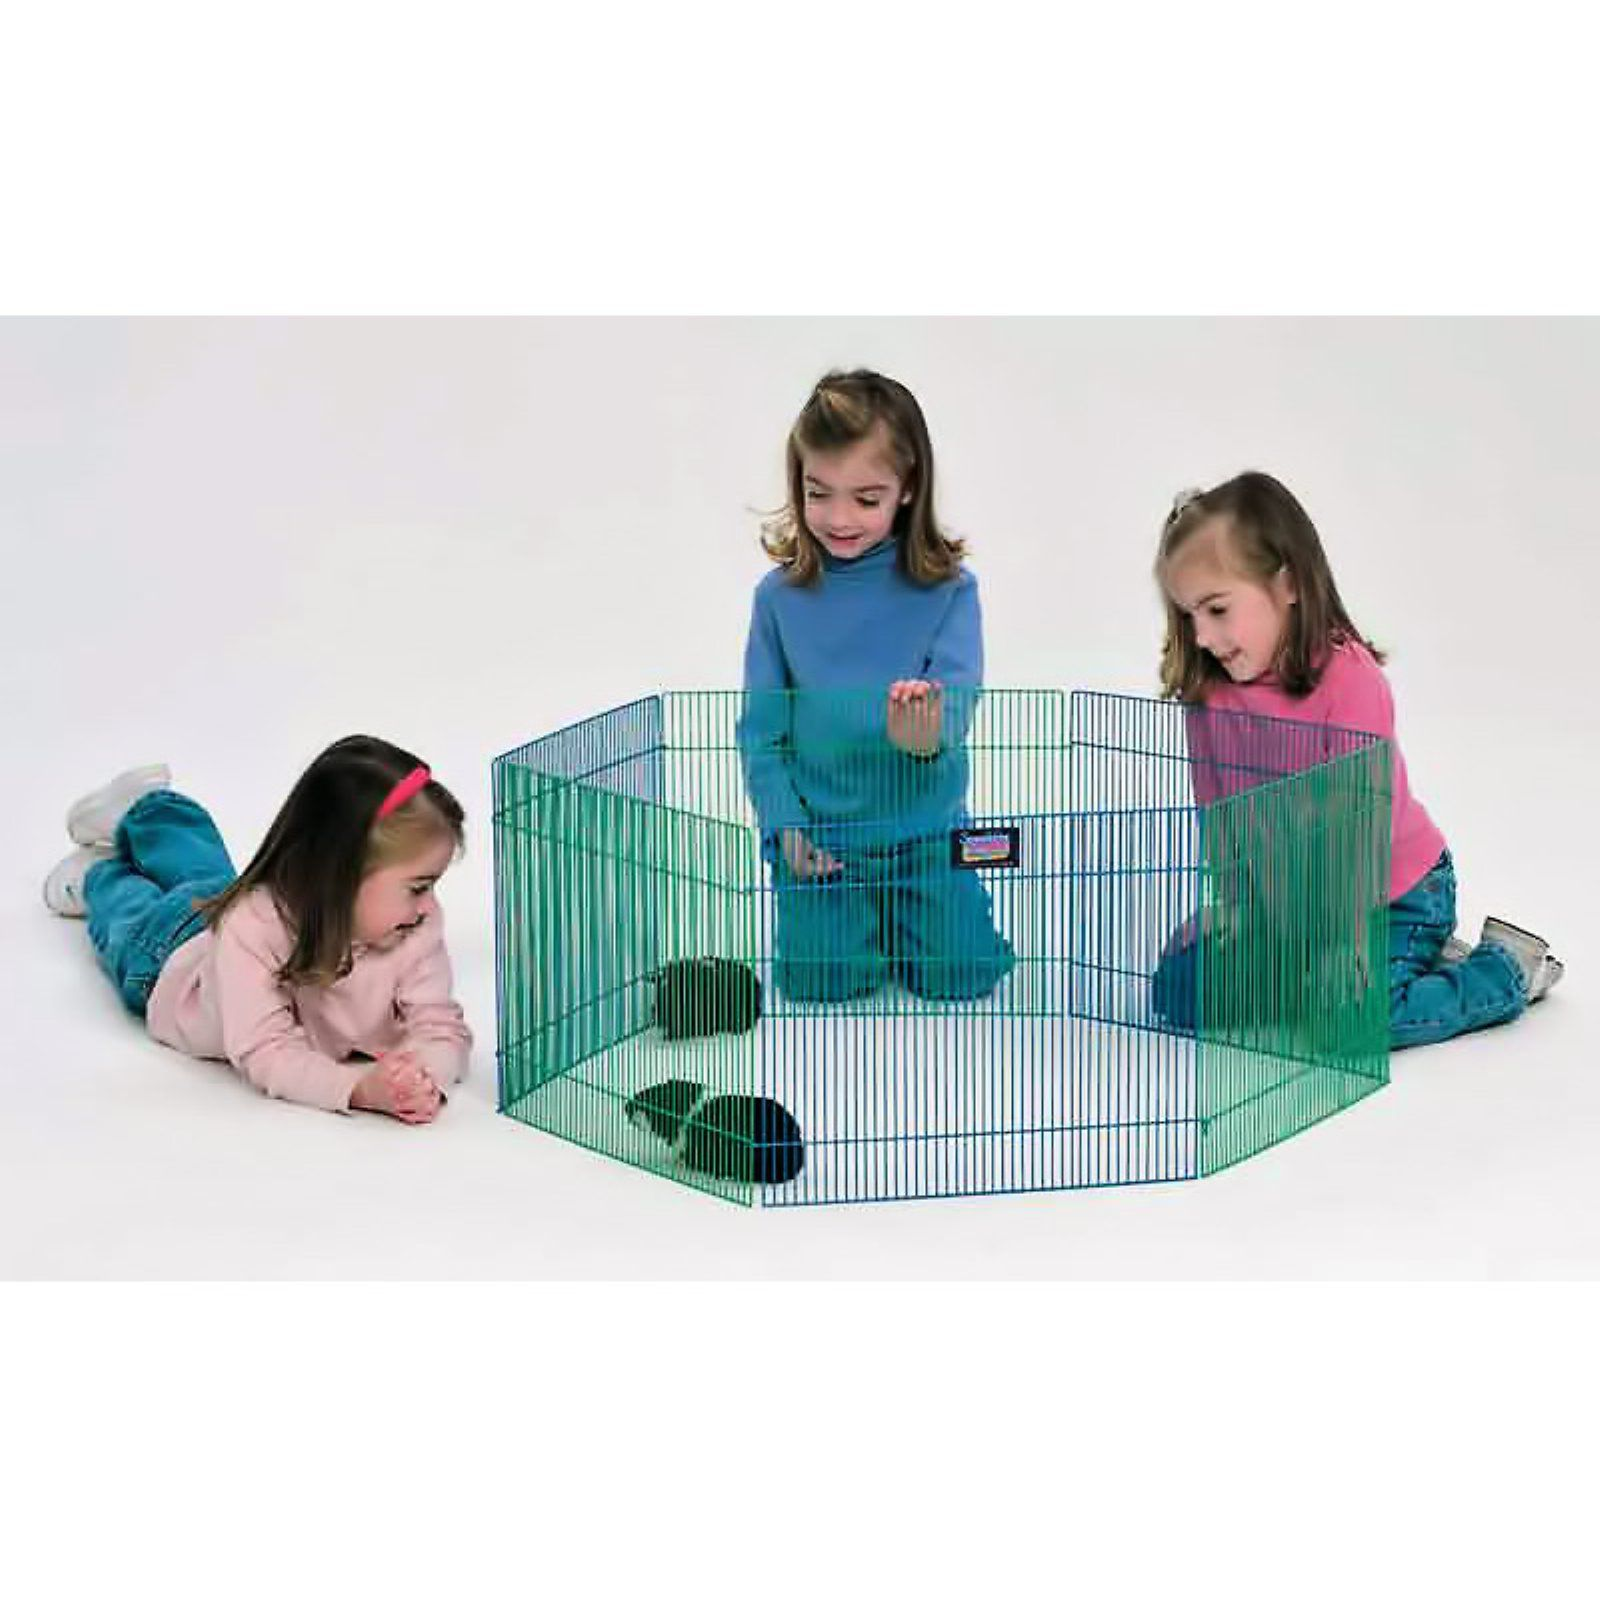 Midwest Homes For Pets Critterville Small Pet Playpen Metal Exercise Pen Small Pets Dog Playpen Pet Playpens